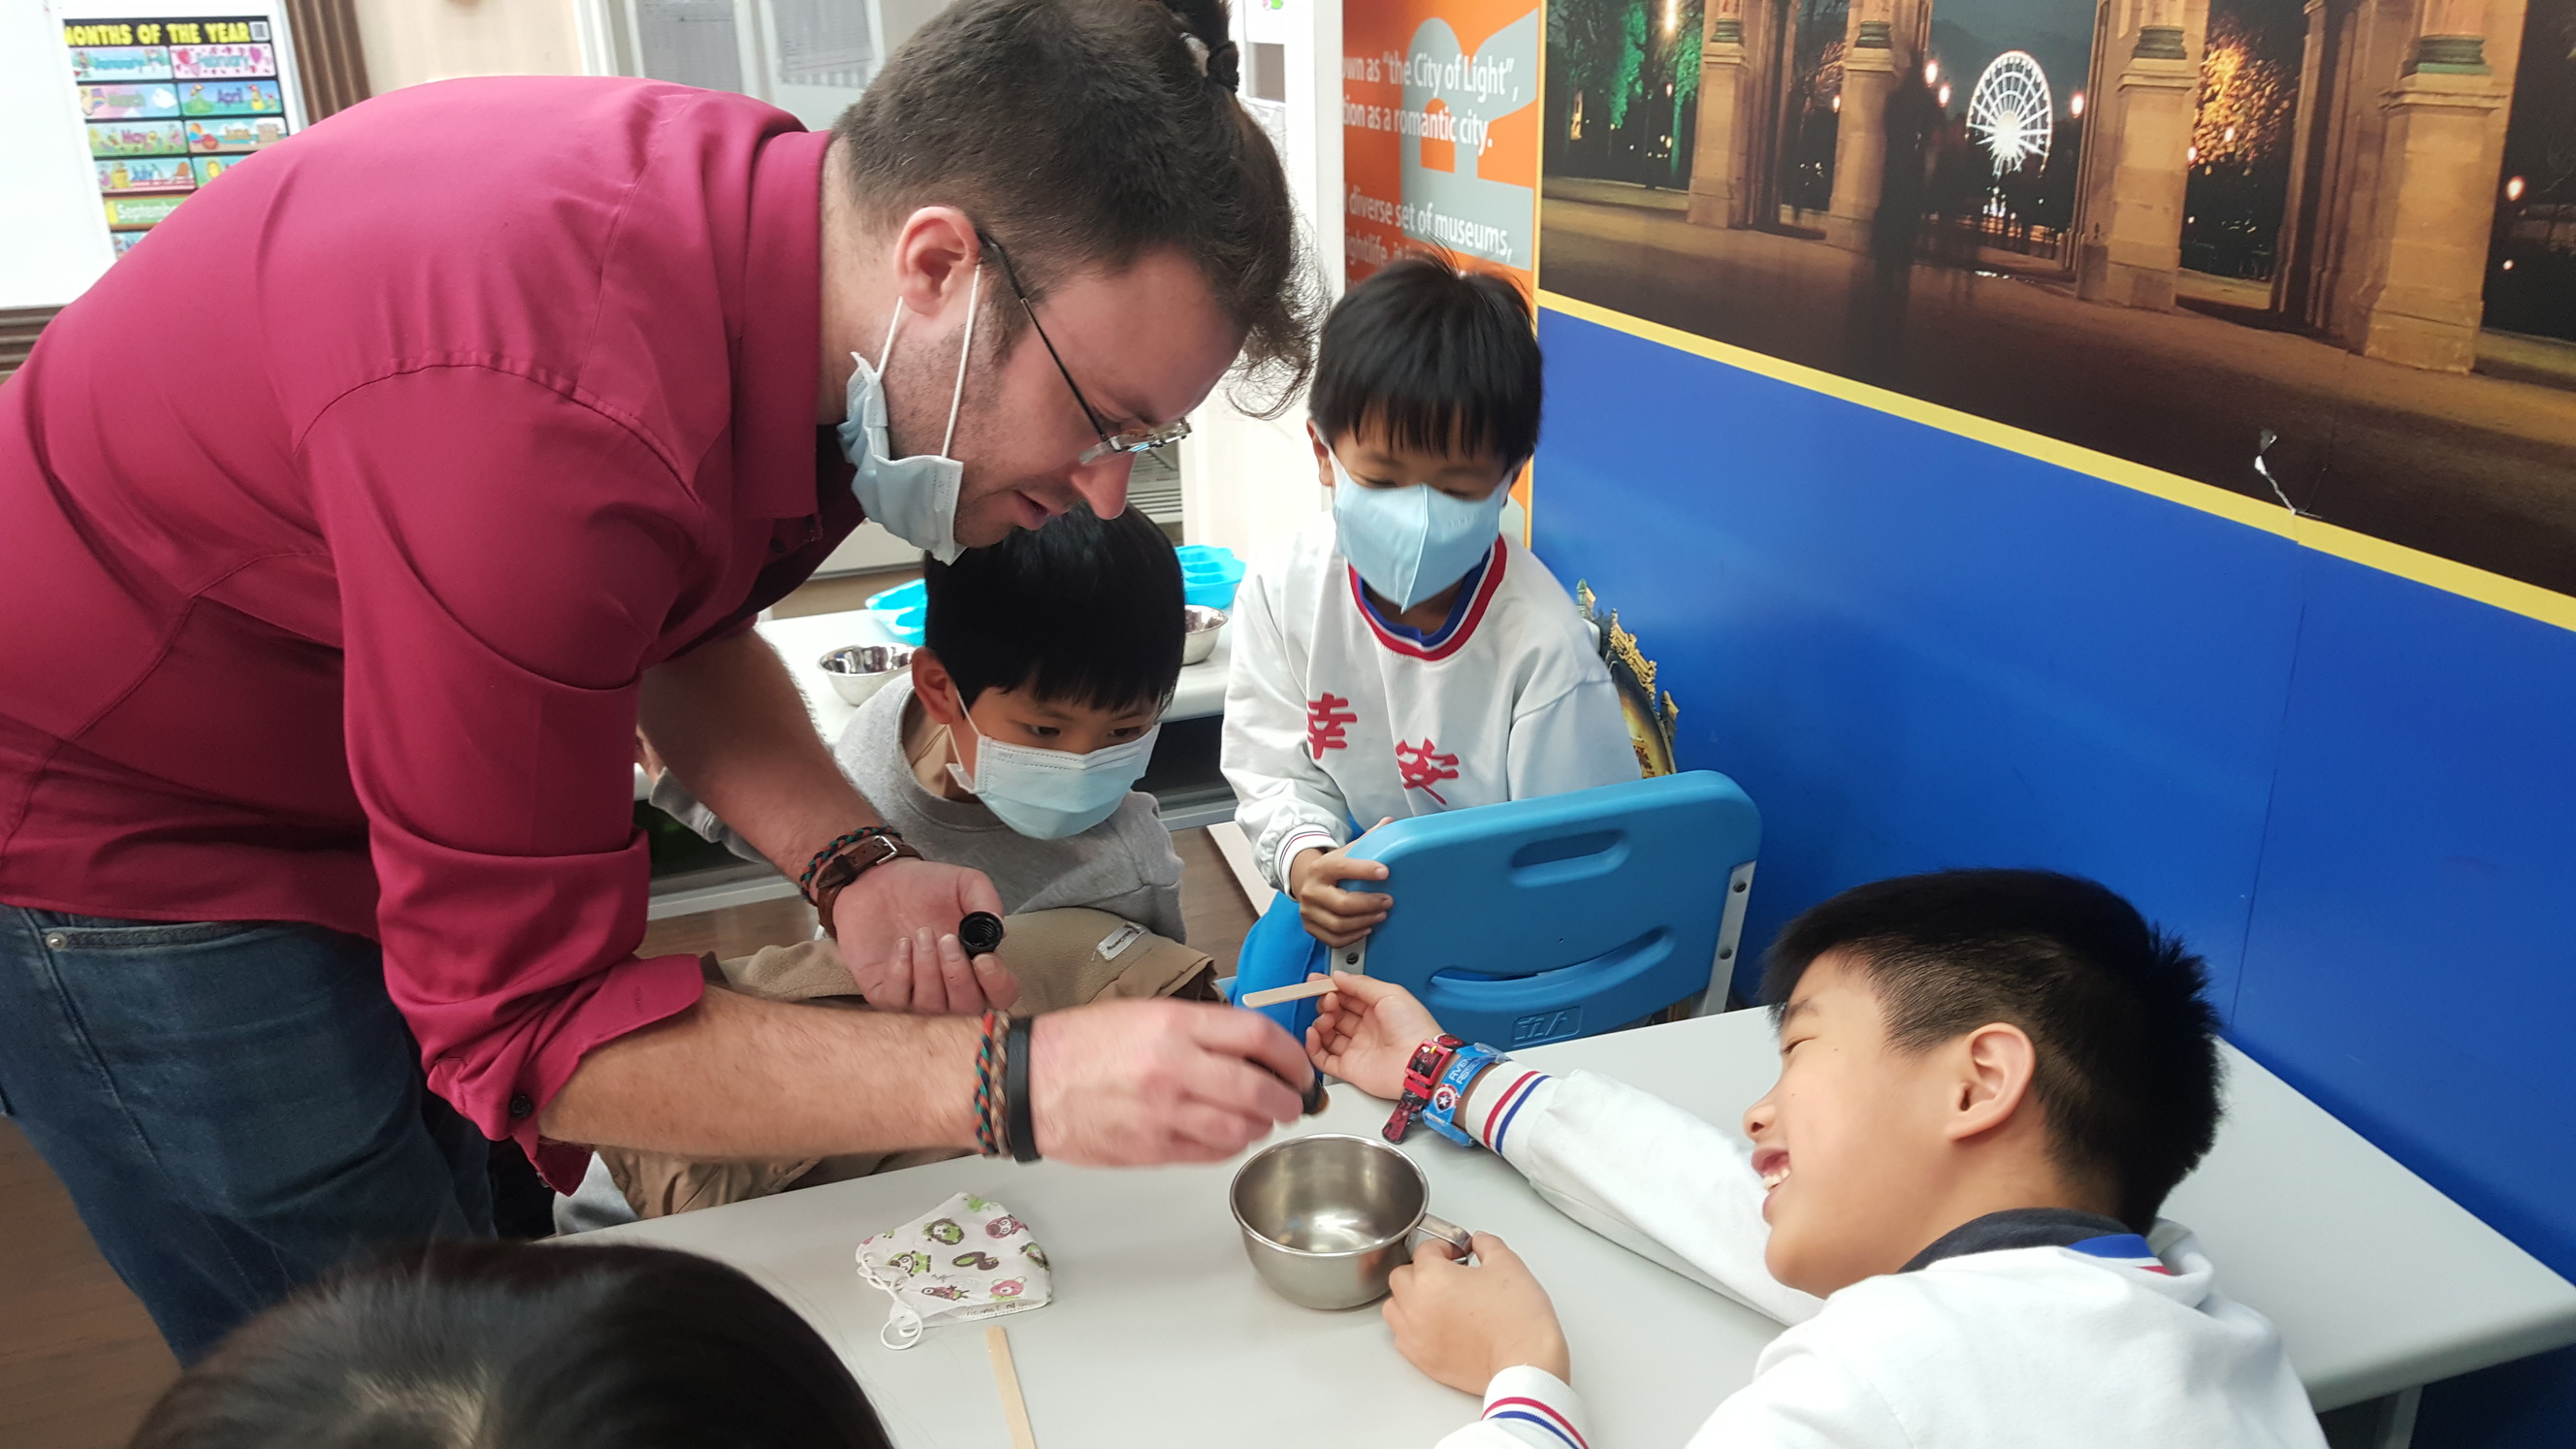 Teaching English and Living in Taiwan Jobs Available 教學工作, American Eagle Institute, Xinyi-Xinsheng Branch  We offer At least 20 hours per week, ARC, National Health & Labor Insurance. Small classes around 10~14 students per class. image